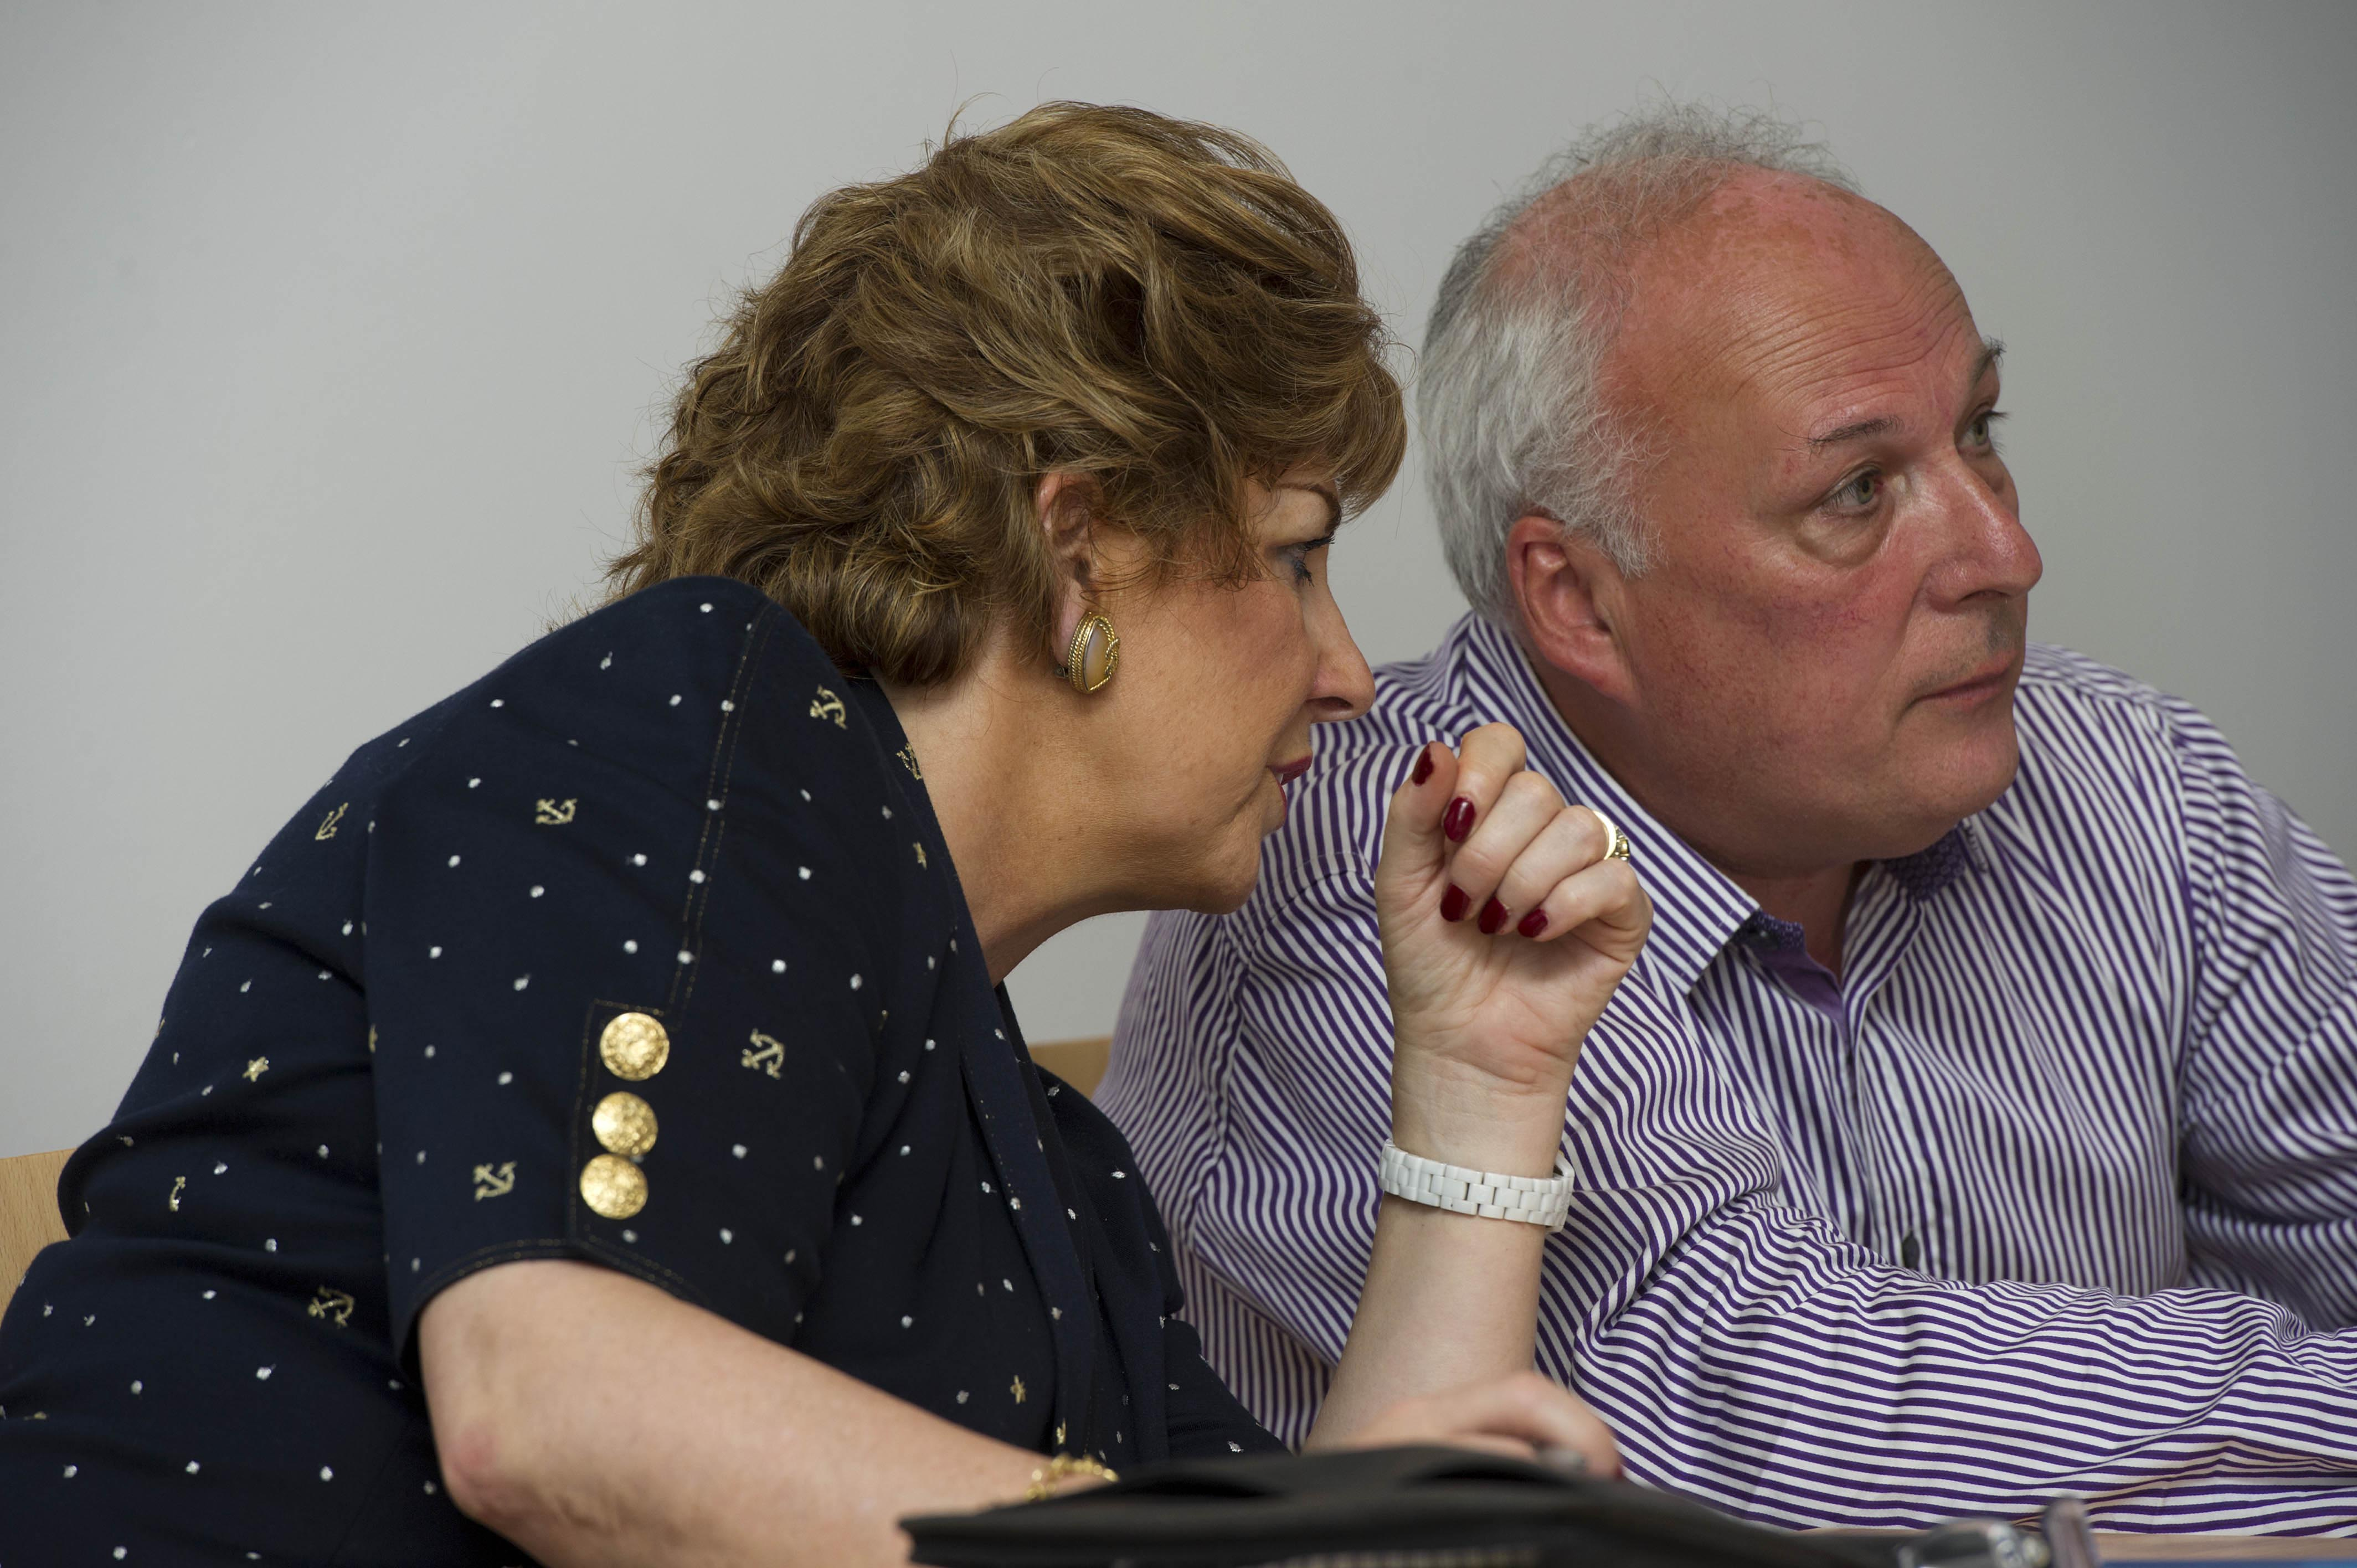 Ms Geraldine Byrne-Nason, Second Secretary-General, Department of An Taoiseach and Cllr Dermot Lacey, Cathaoirleach, S&E Regional Assembly at the Joint Meeting of the Regional Assemblies June 2013.